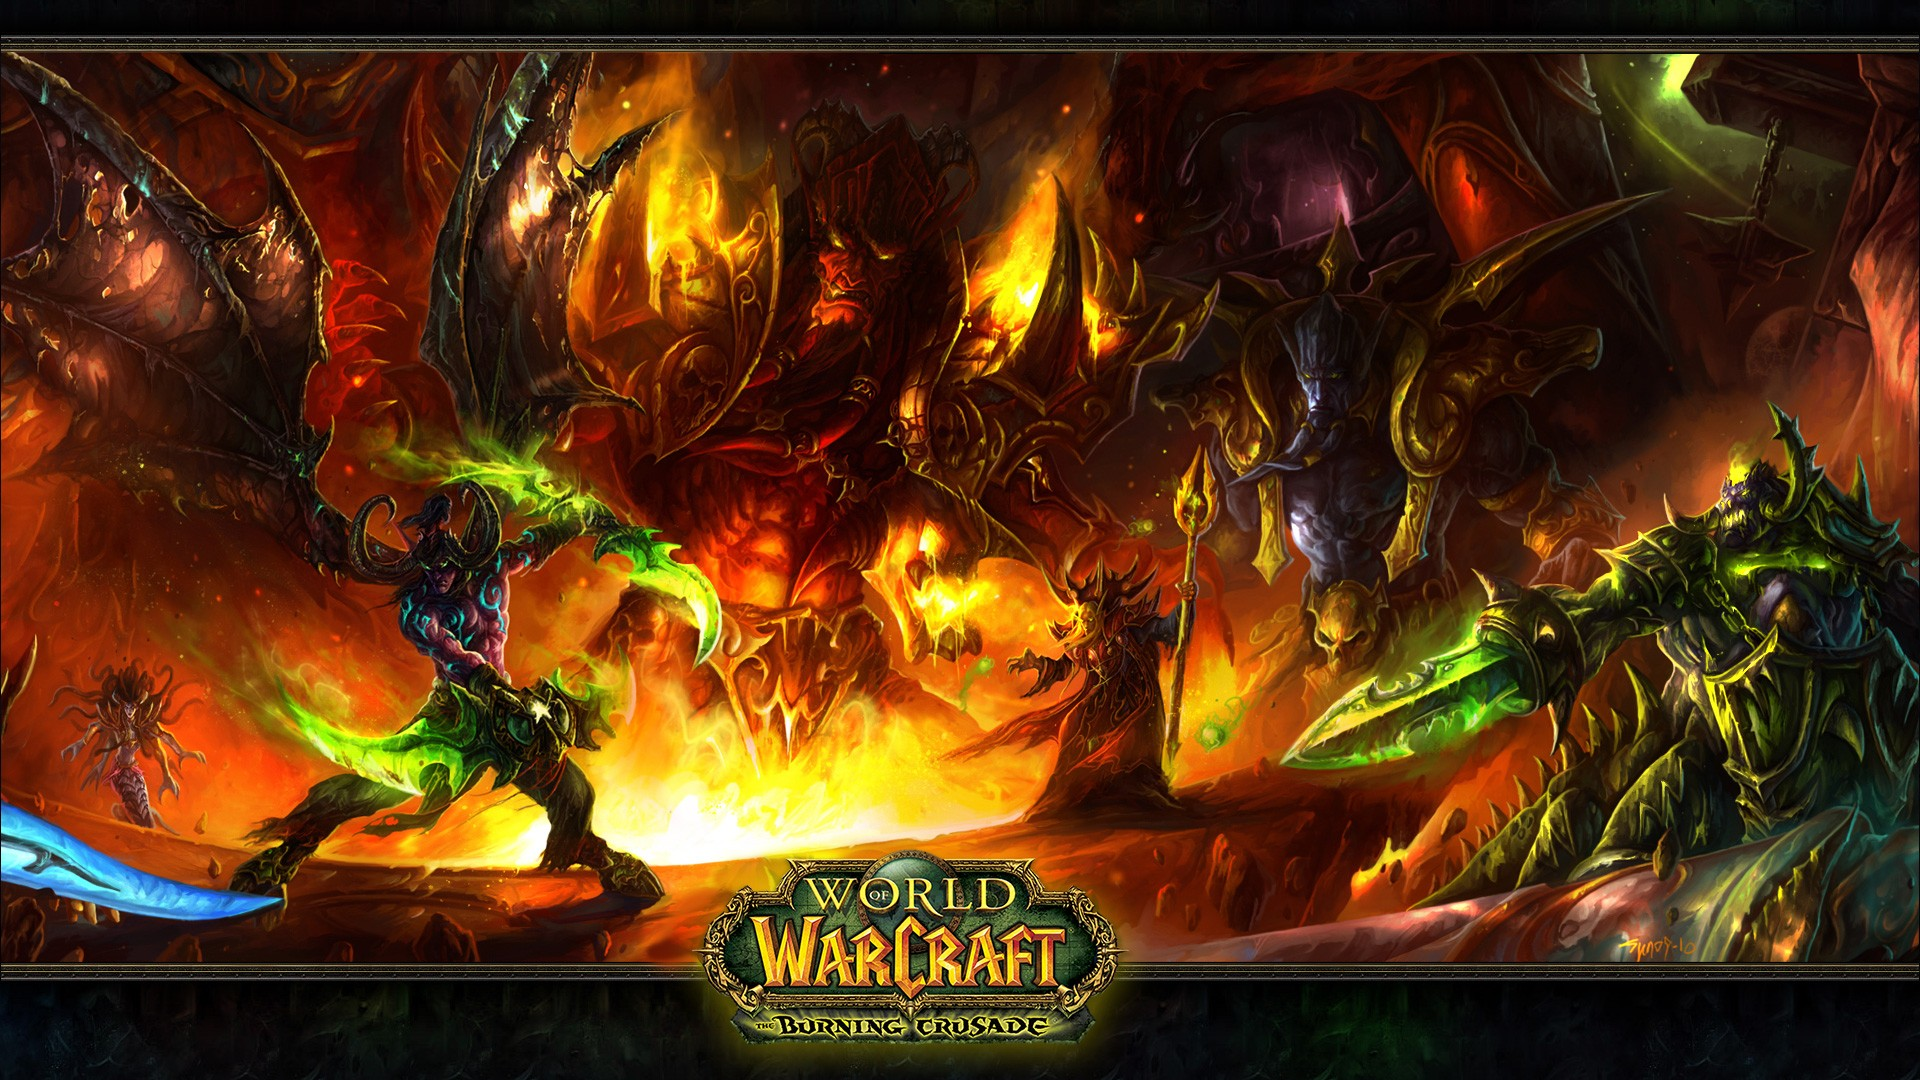 World Of Warcraft Burning Crusade 441.42 Kb